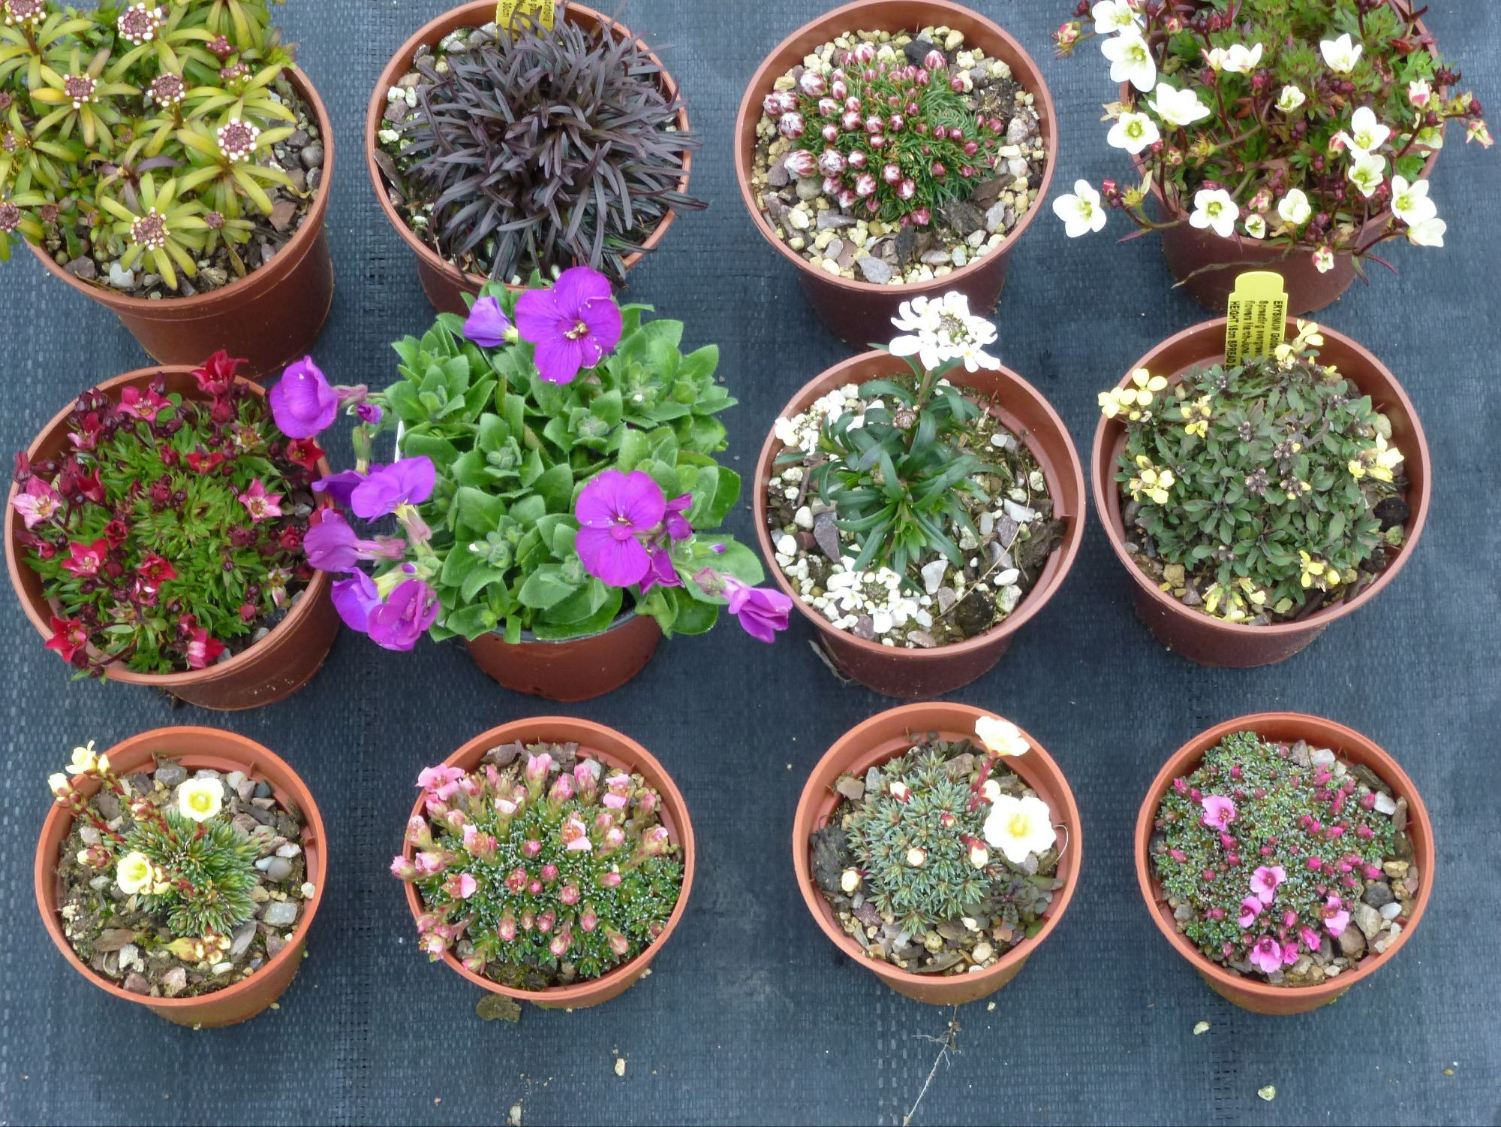 Lovely miniature alpine beauties suitable for planting in troughs and ideal in small pockets in the rockery.